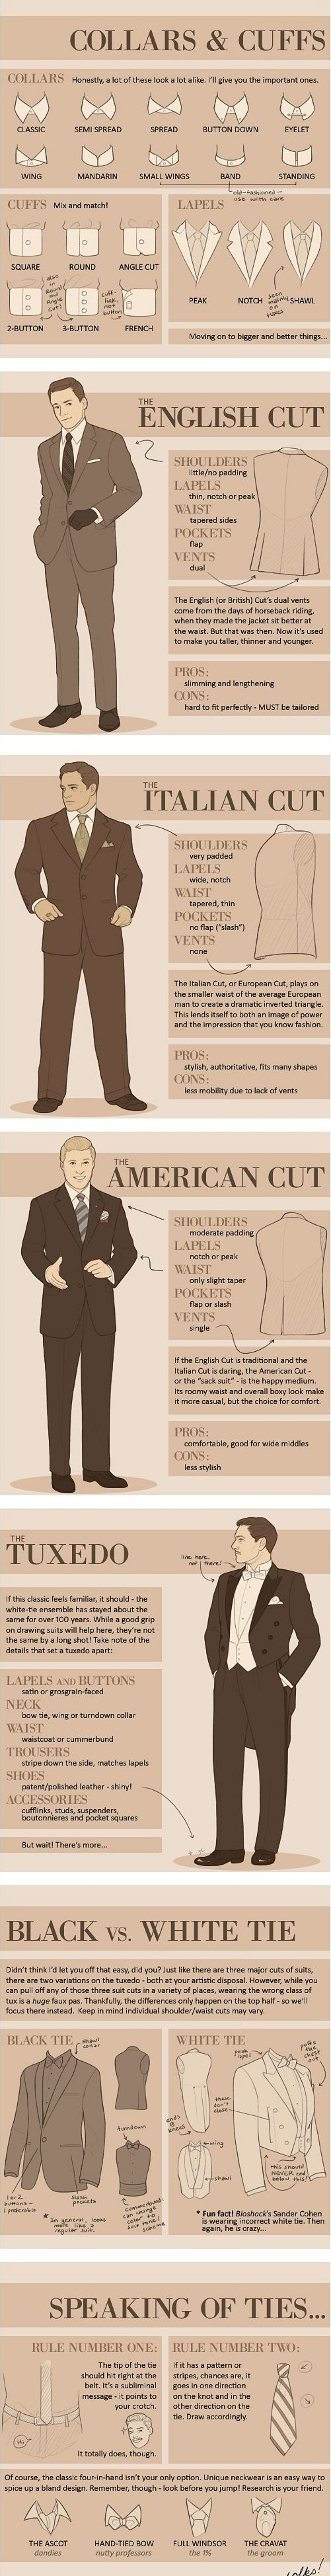 Wedding Suits Decoded remember to show this to future husband for reference.